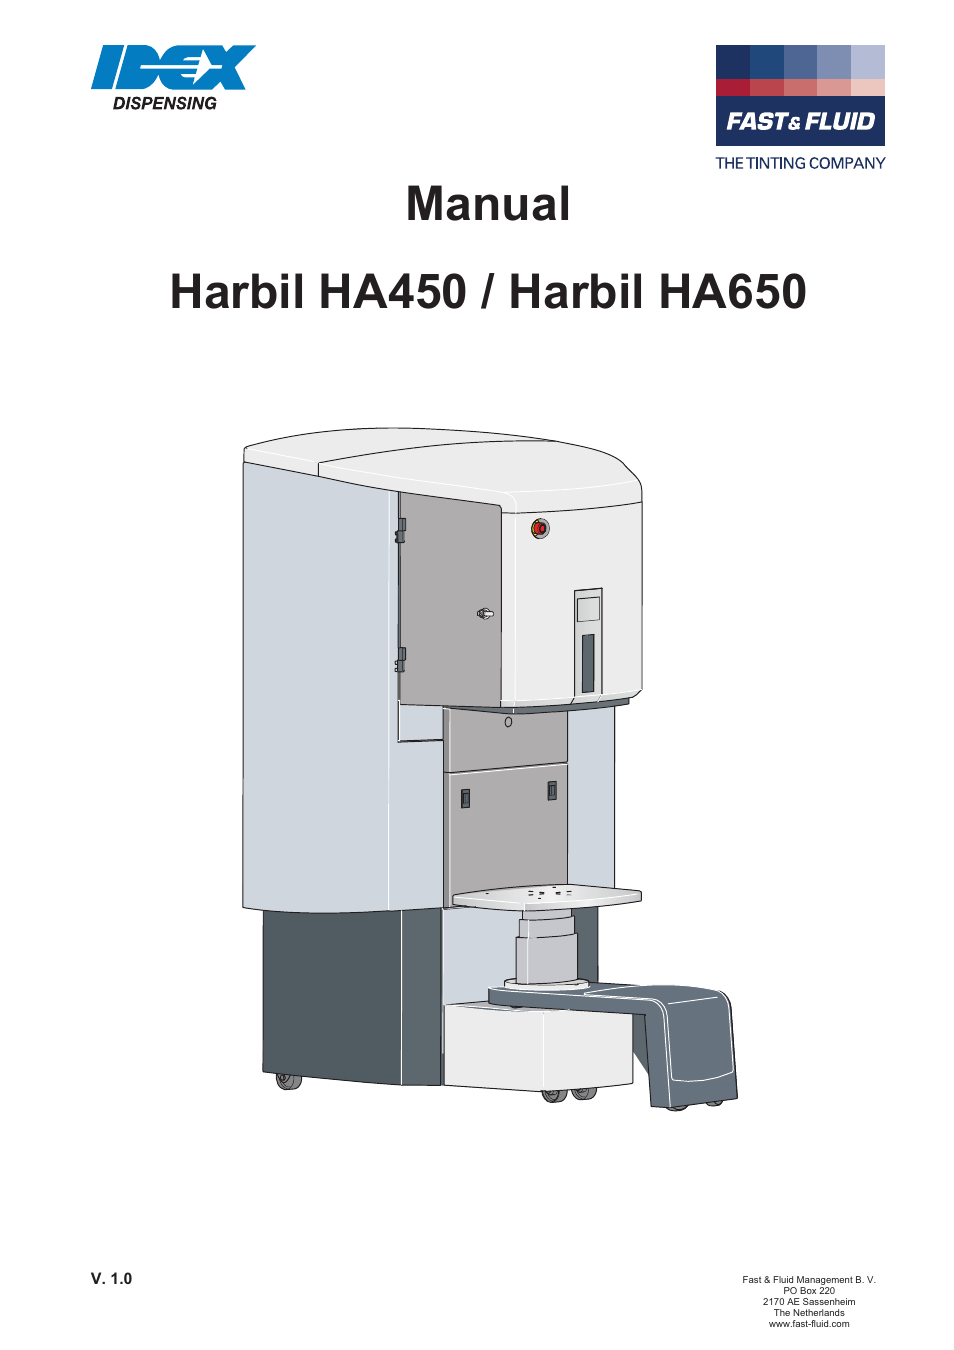 Fast & Fluid HA650 User Manual | 32 pages | Also for: HA450